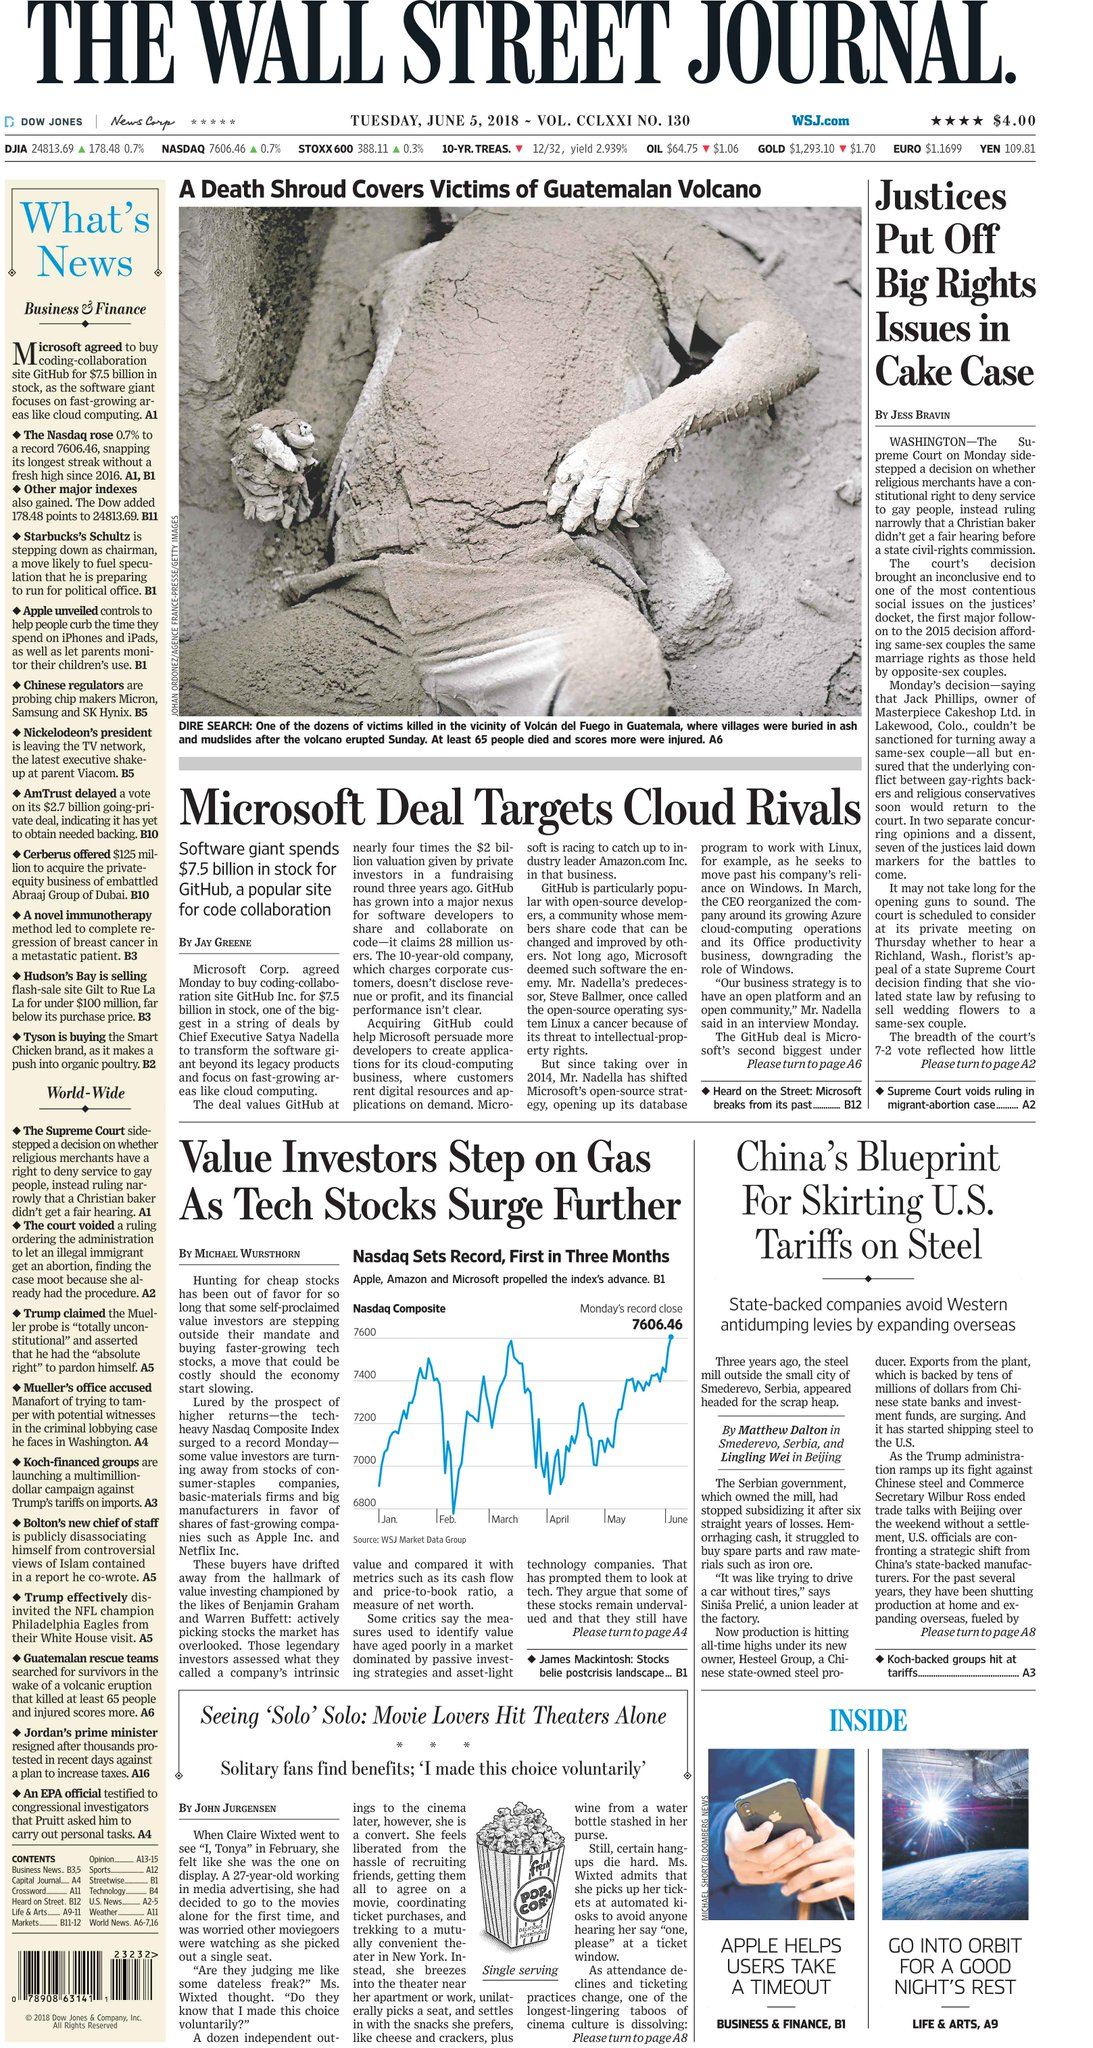 Take an early look at the front page of The Wall Street Journal https://t.co/5xQPDPcm8q https://t.co/JyQ3gOLl1M